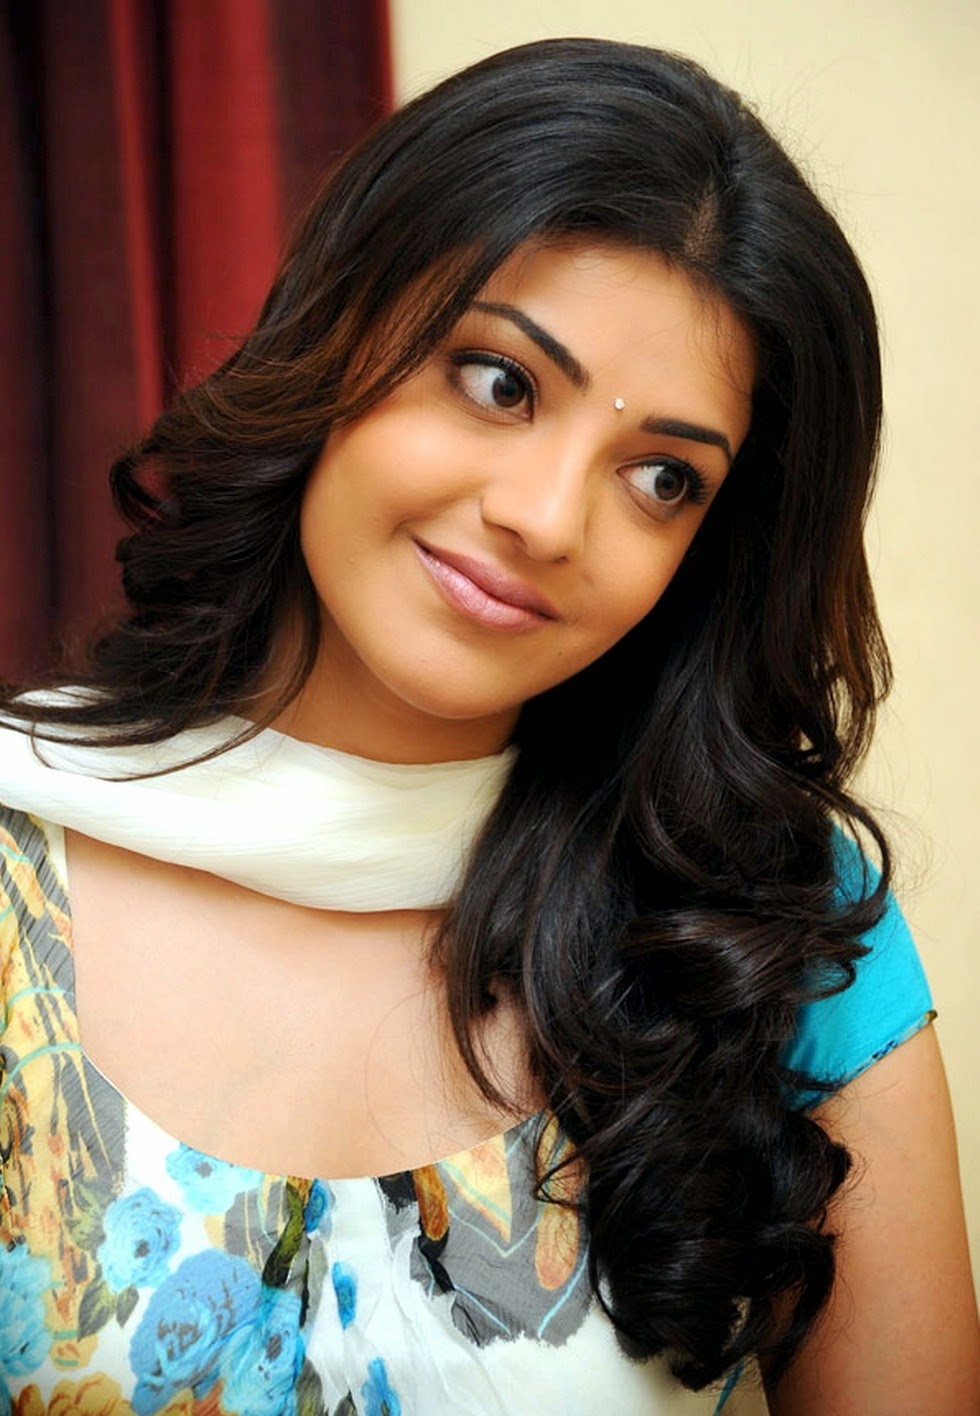 Wallpaper download kajal agarwal - Image Wallpapers